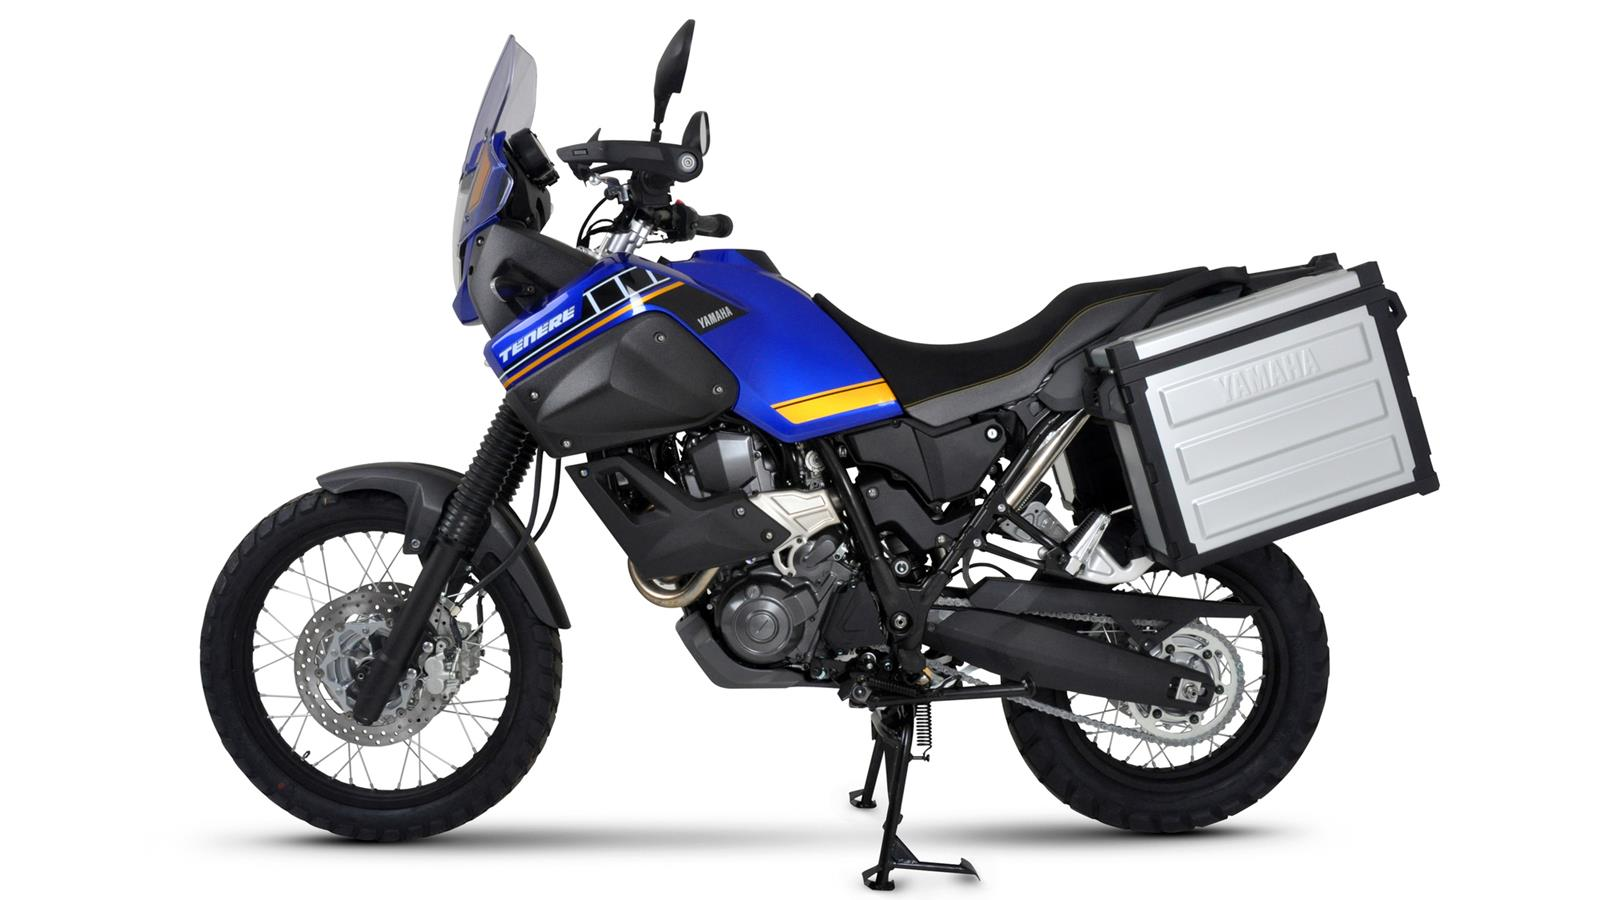 2013 yamaha xt660z t n r touring gallery 502155 top speed. Black Bedroom Furniture Sets. Home Design Ideas